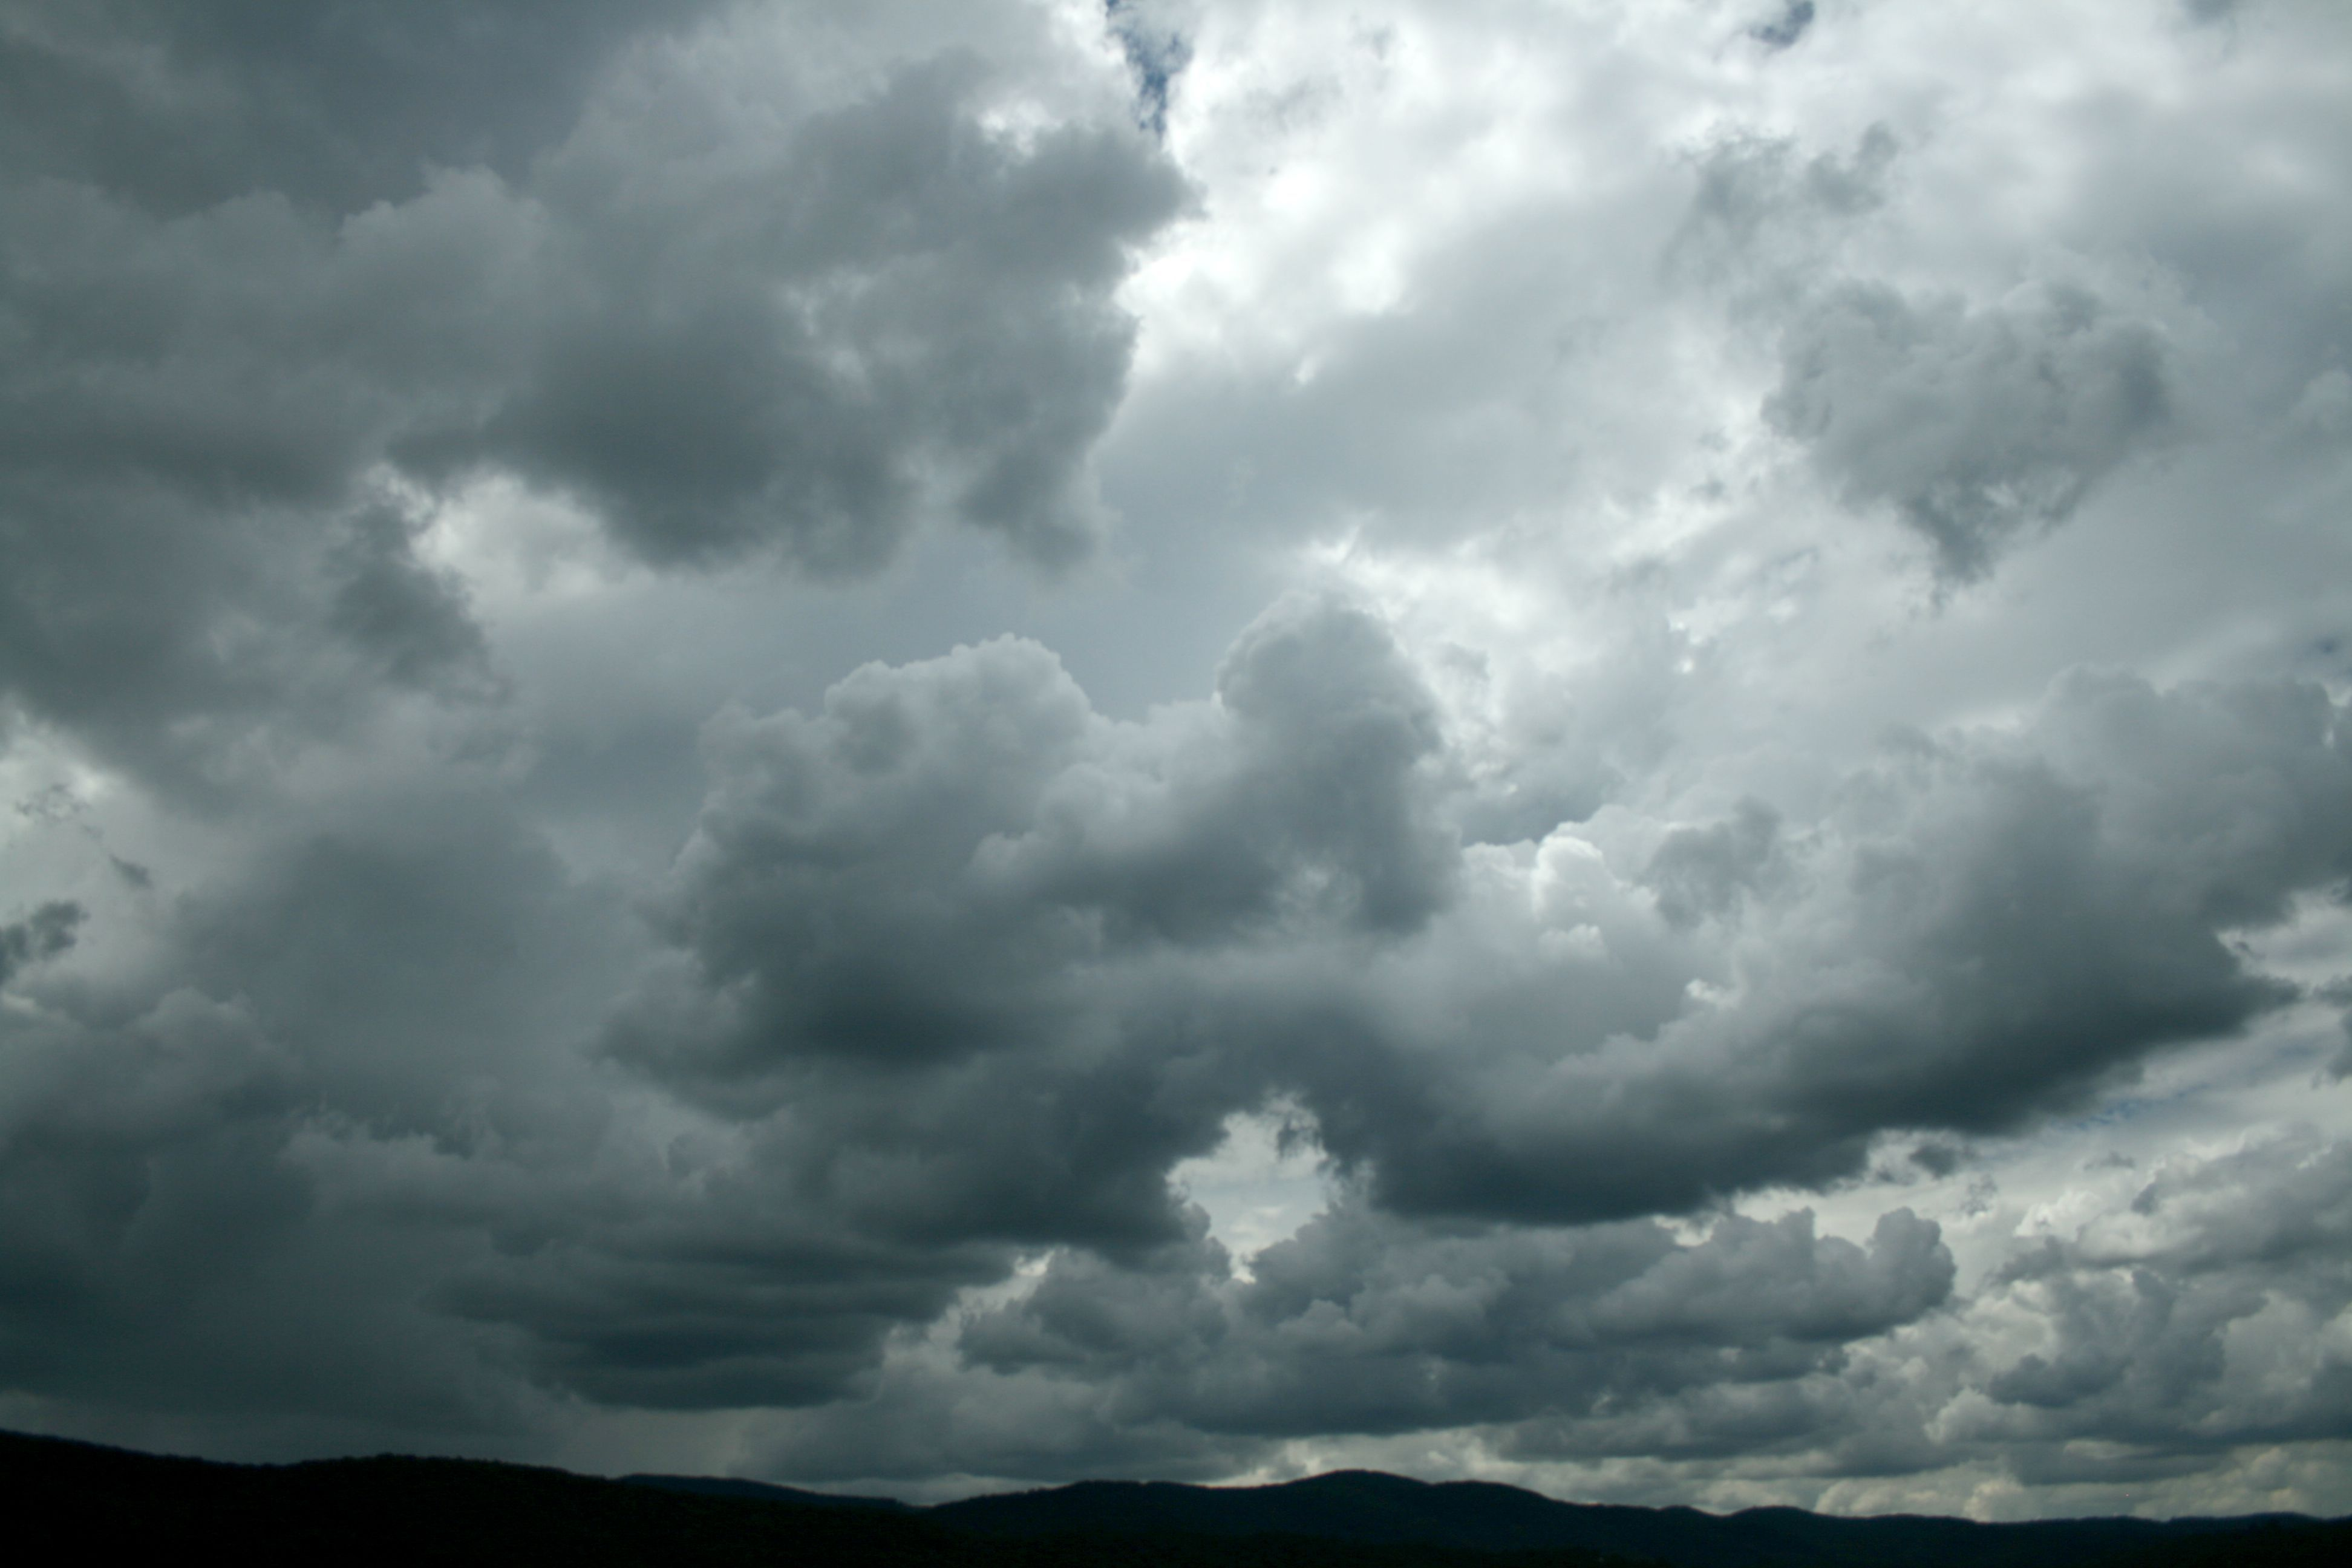 storm sky pictures - Google Search | Walking in the rain, Storm, Clouds